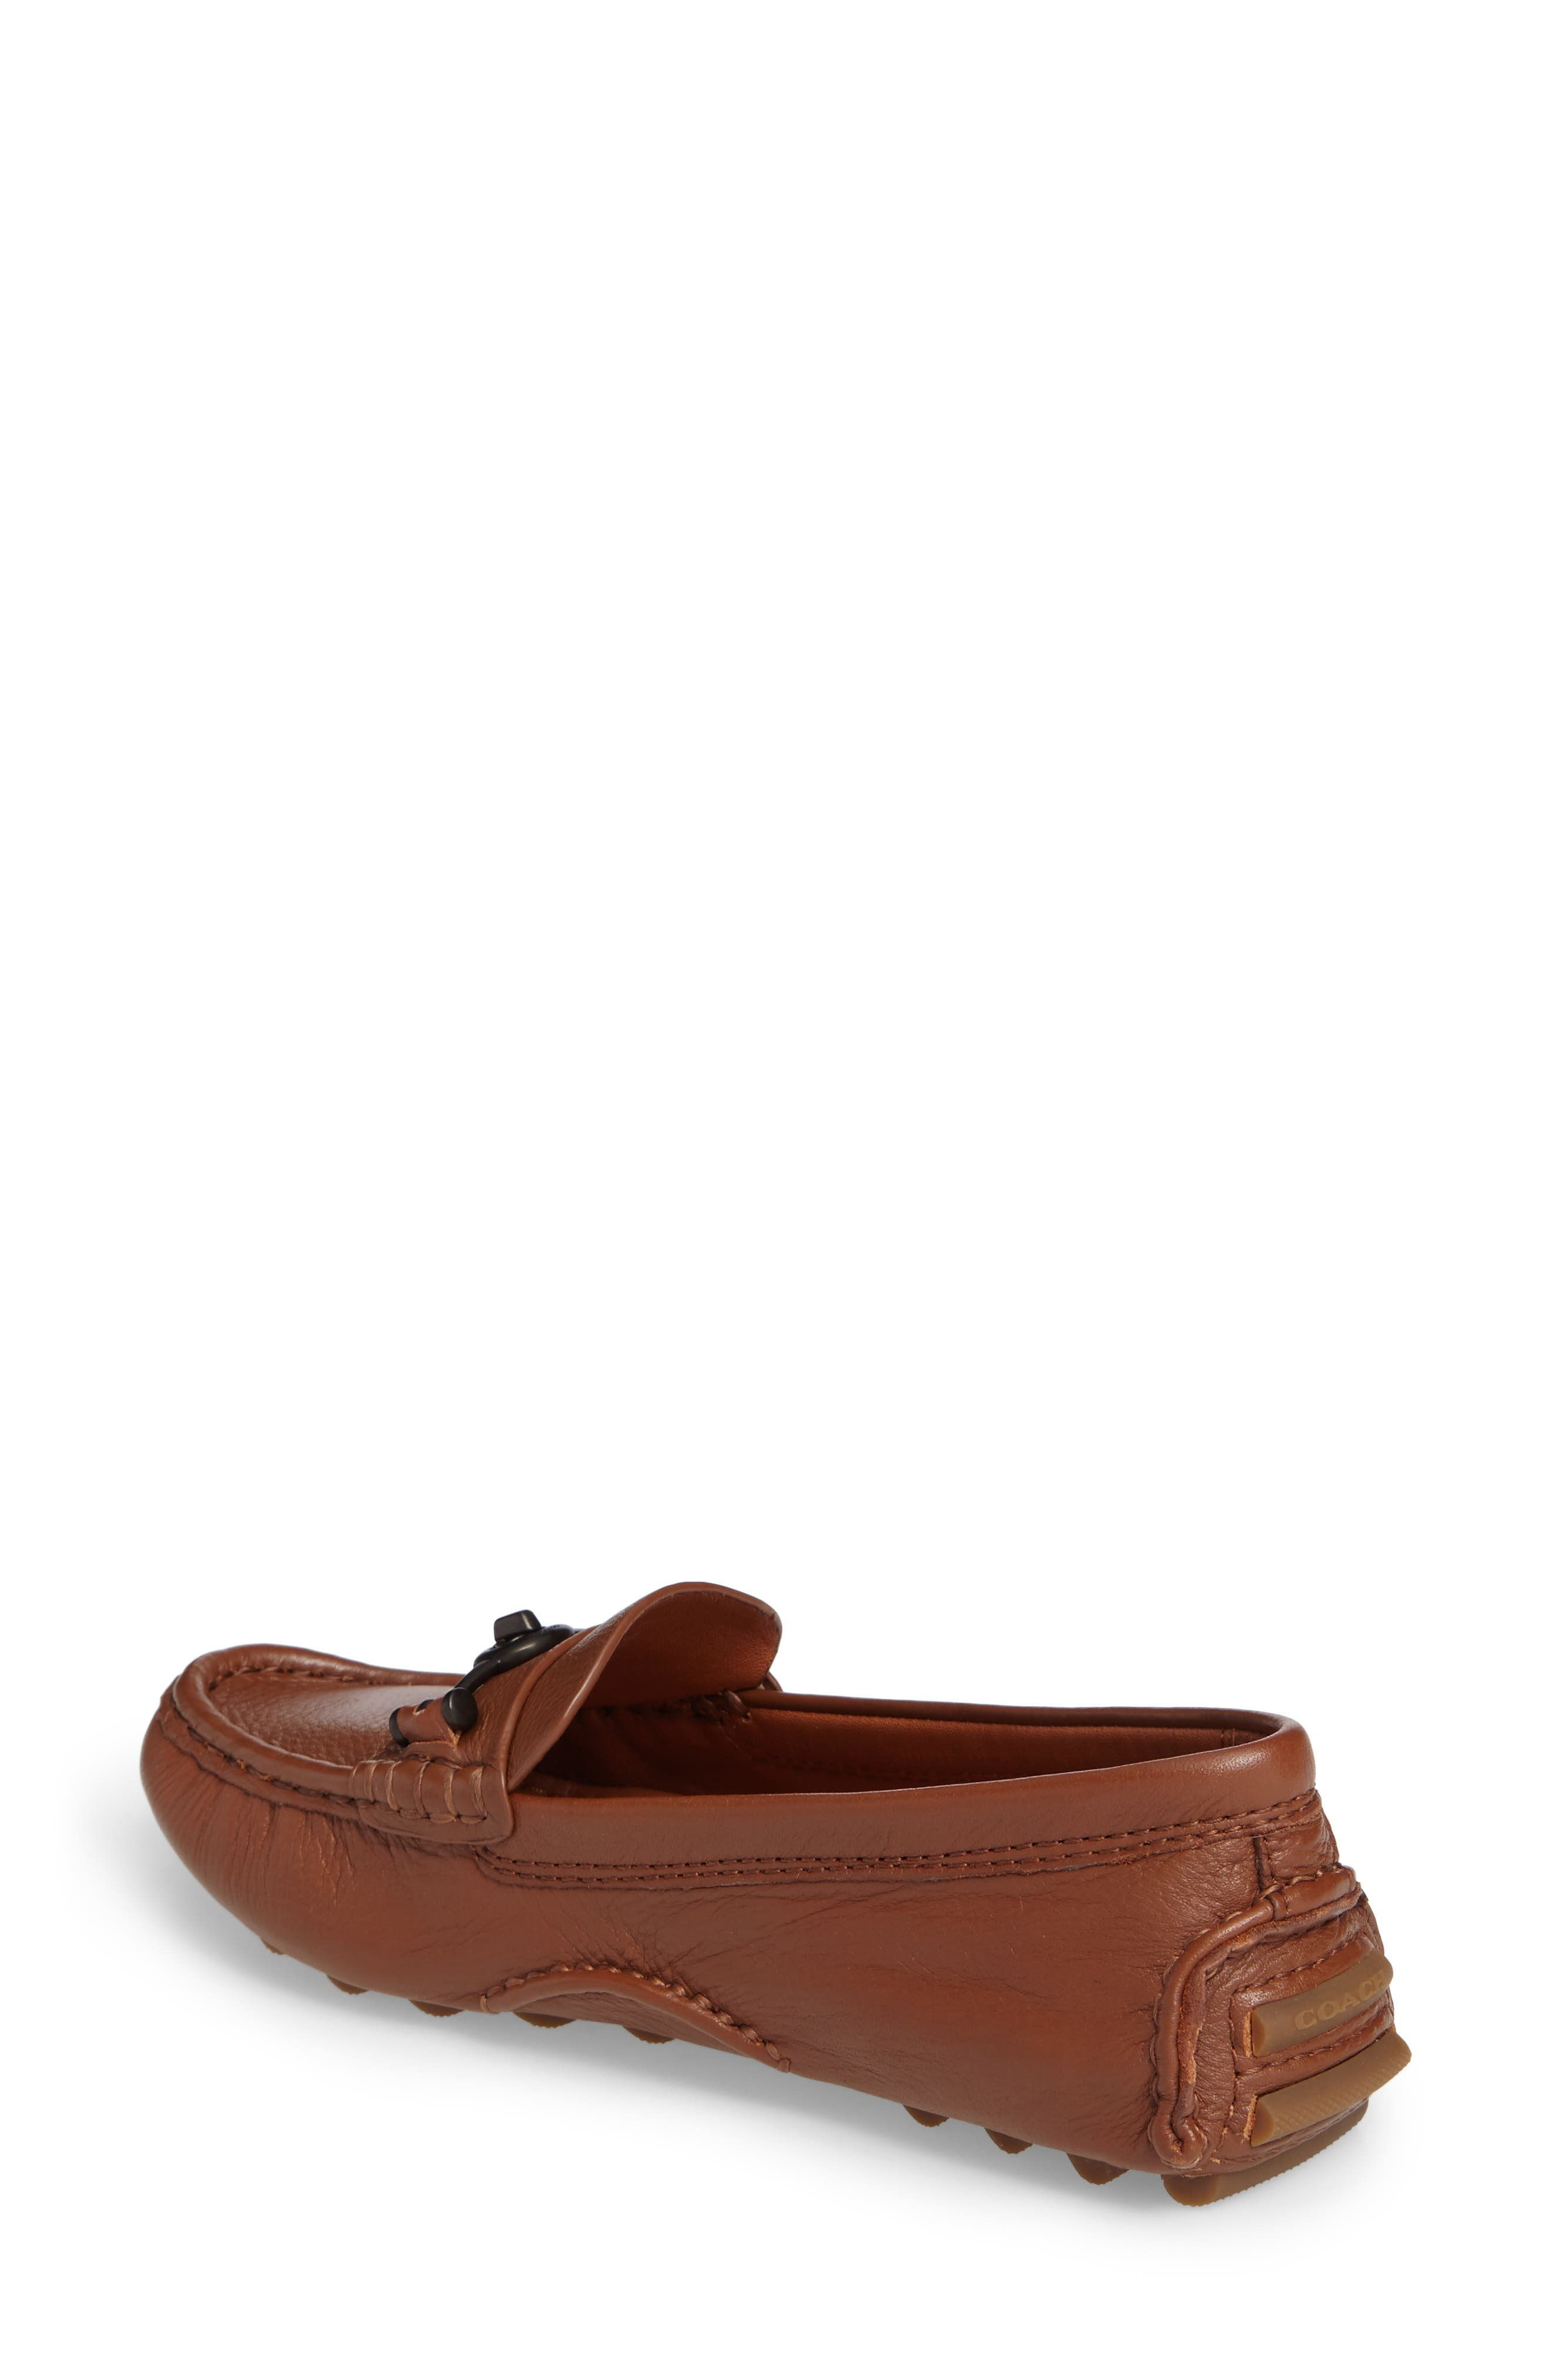 Crosby Driver Loafer,                             Alternate thumbnail 2, color,                             SADDLE LEATHER